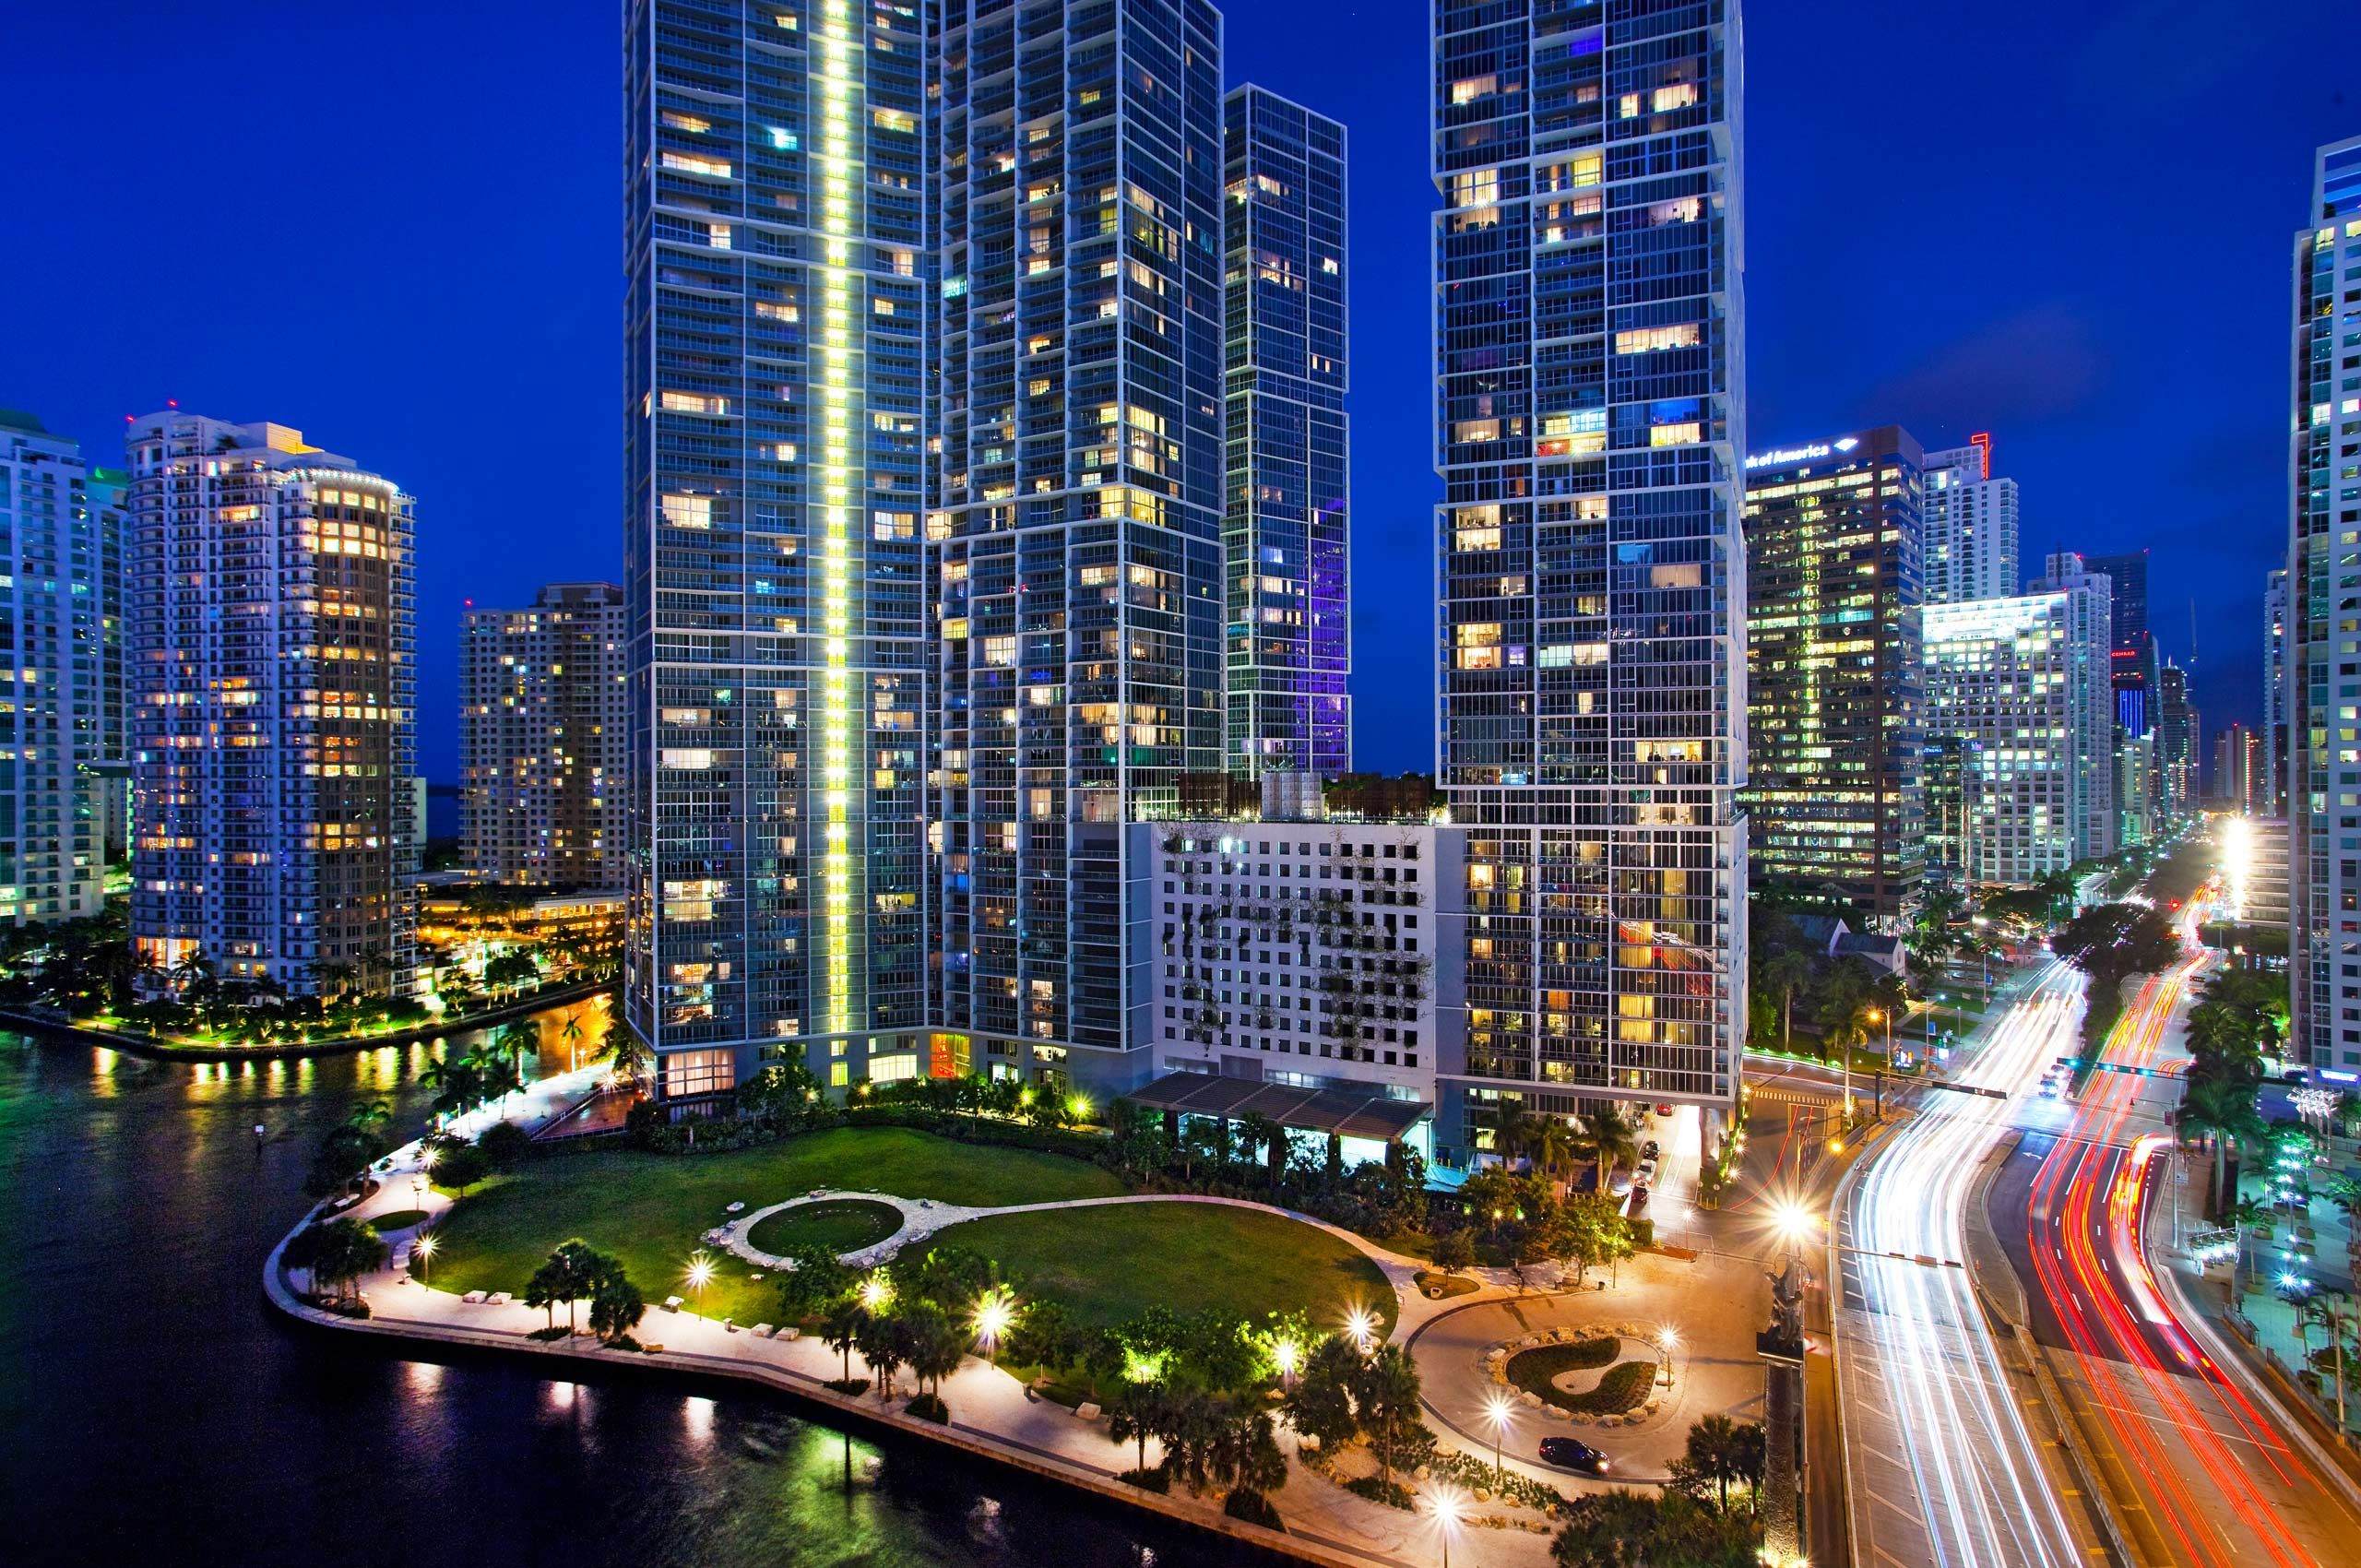 Exterior-from-Miami-River-Dusk-V2.jpg